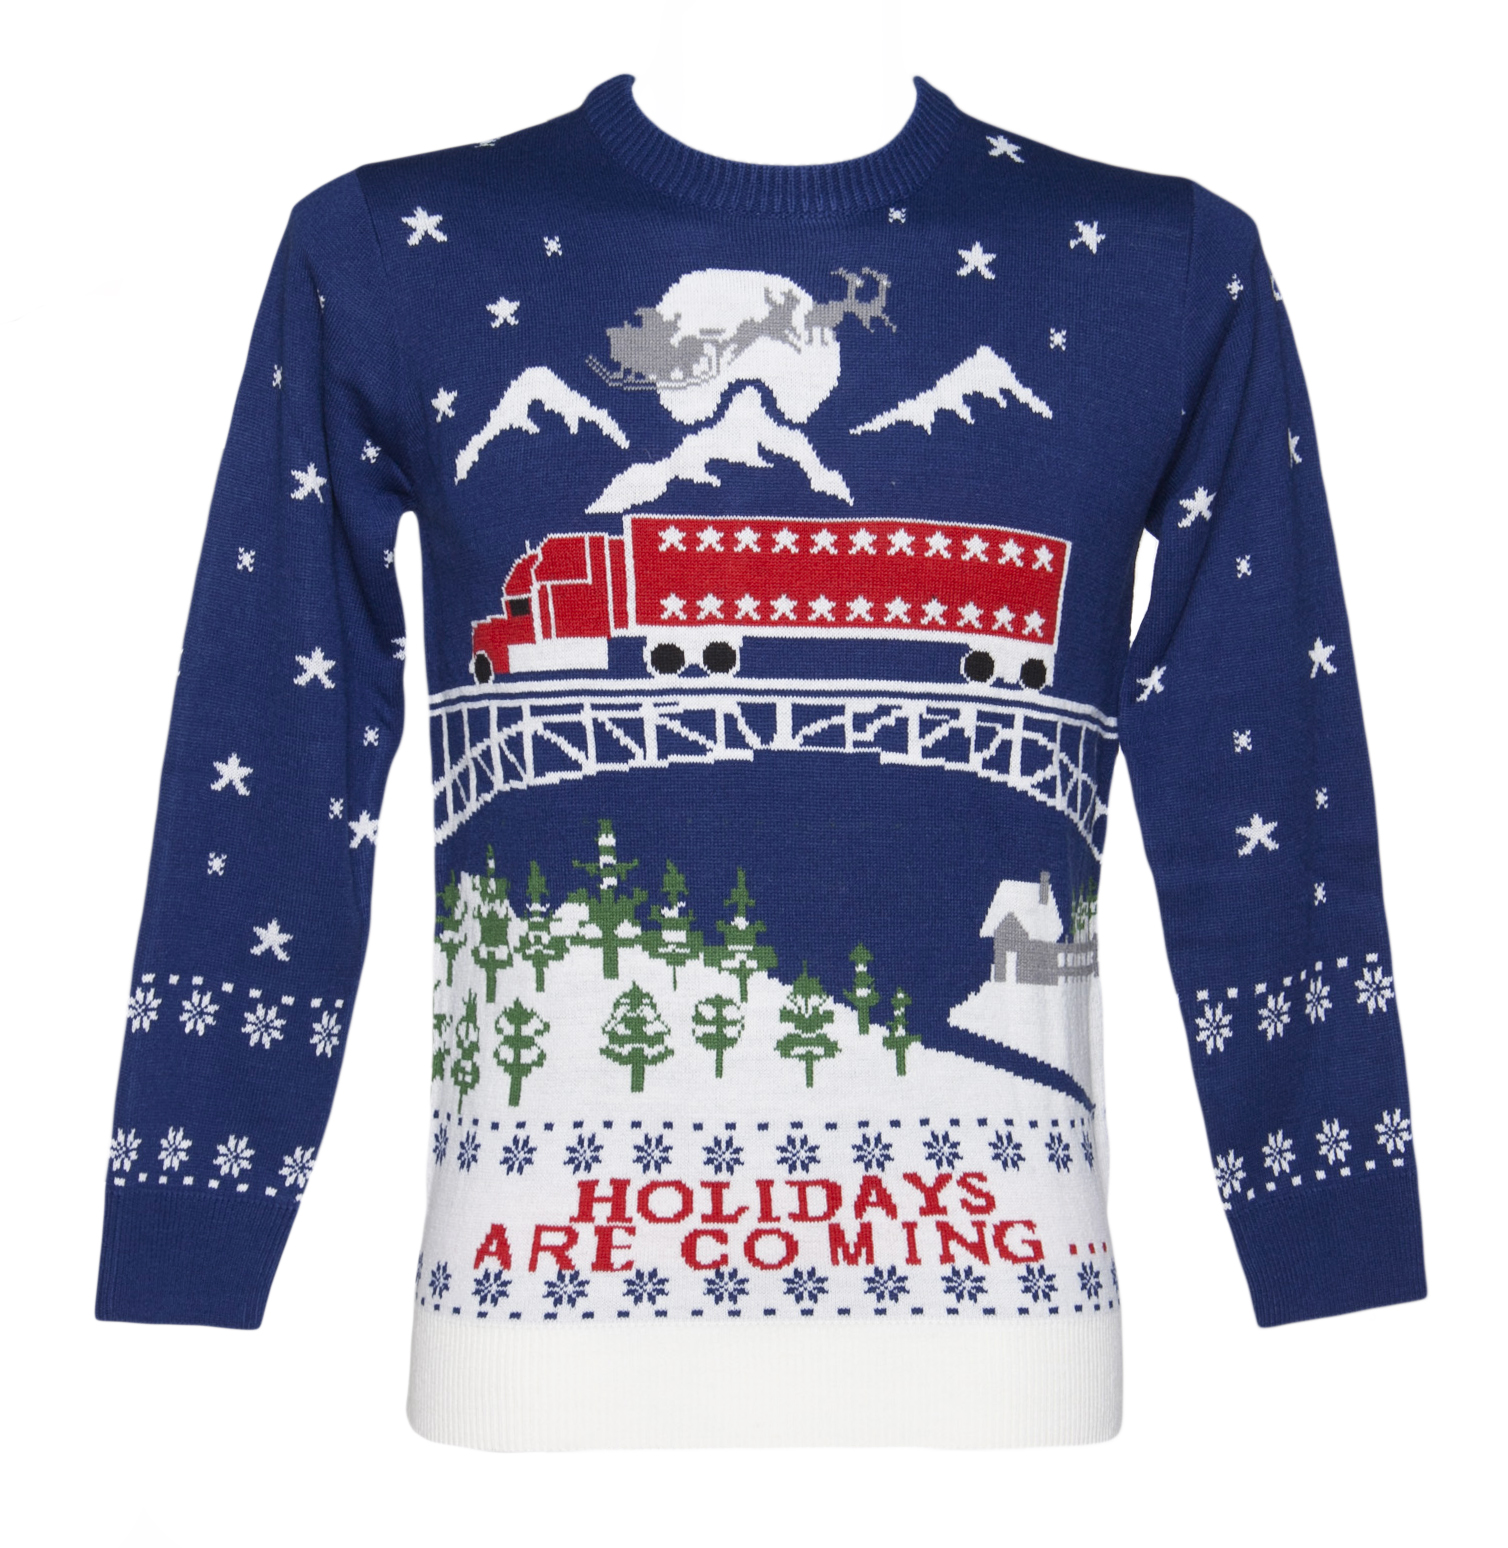 Unisex Holidays Are Coming Christmas Jumper from